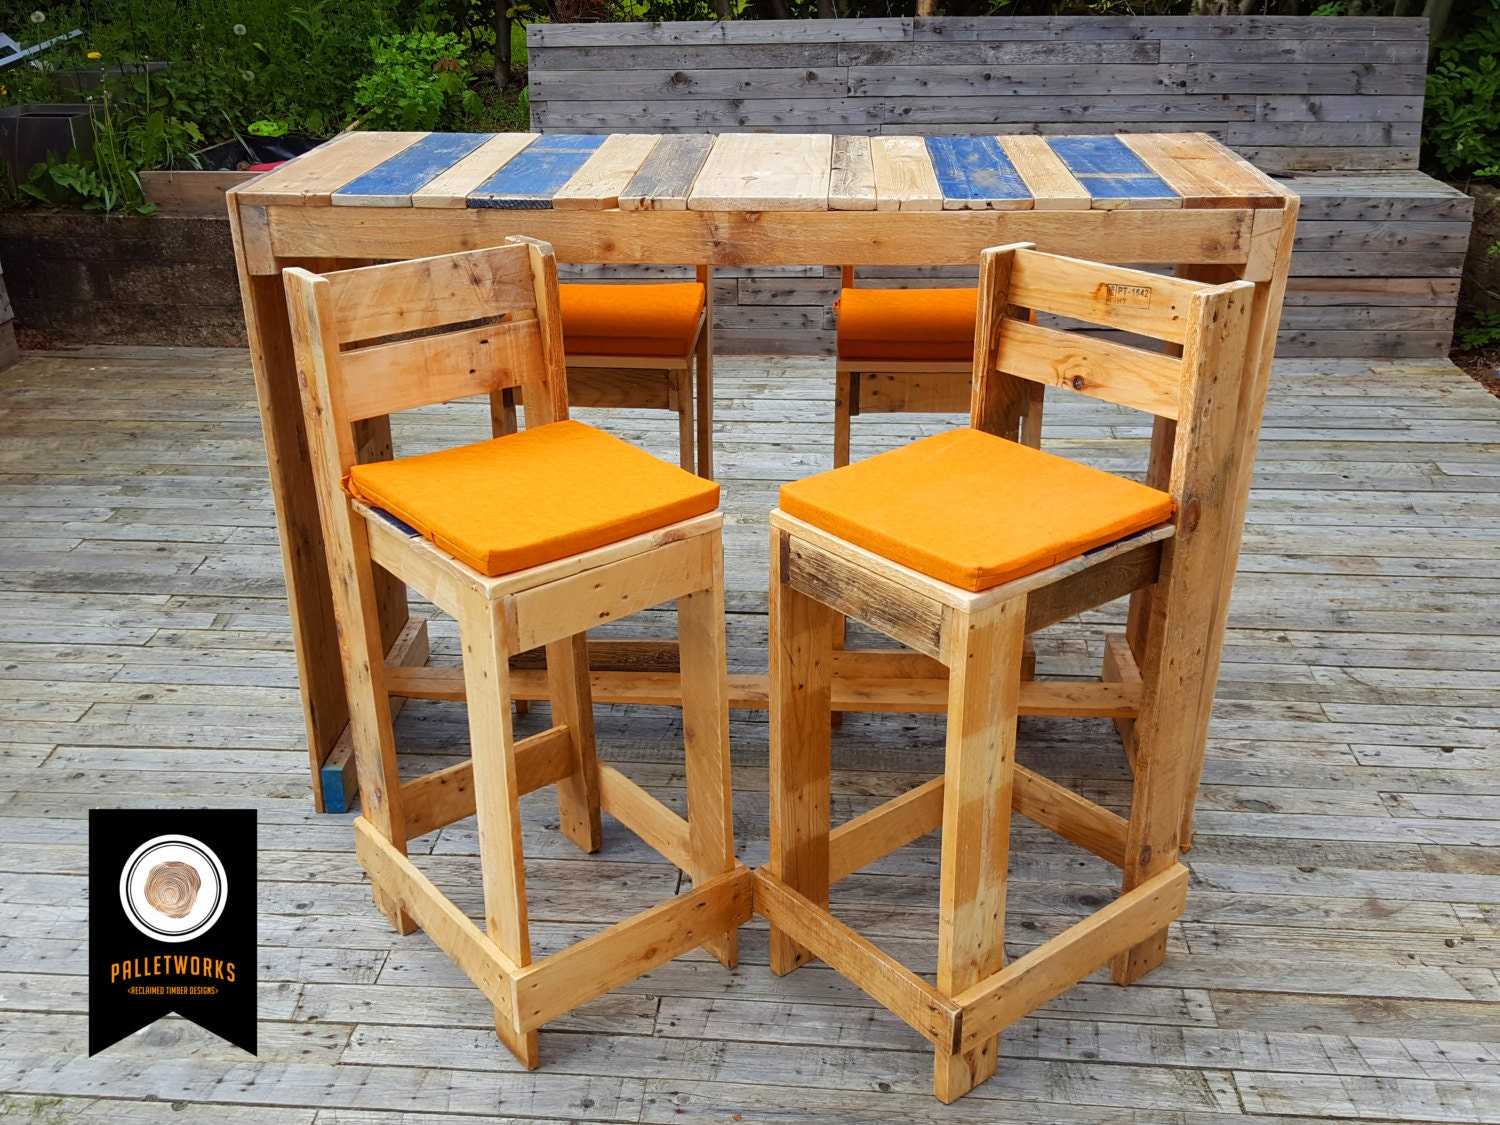 Pallet Bar Stools amp Table Set Breakfast Bar by  : ilfullxfull1030706959nv0g from www.etsy.com size 1500 x 1125 jpeg 498kB